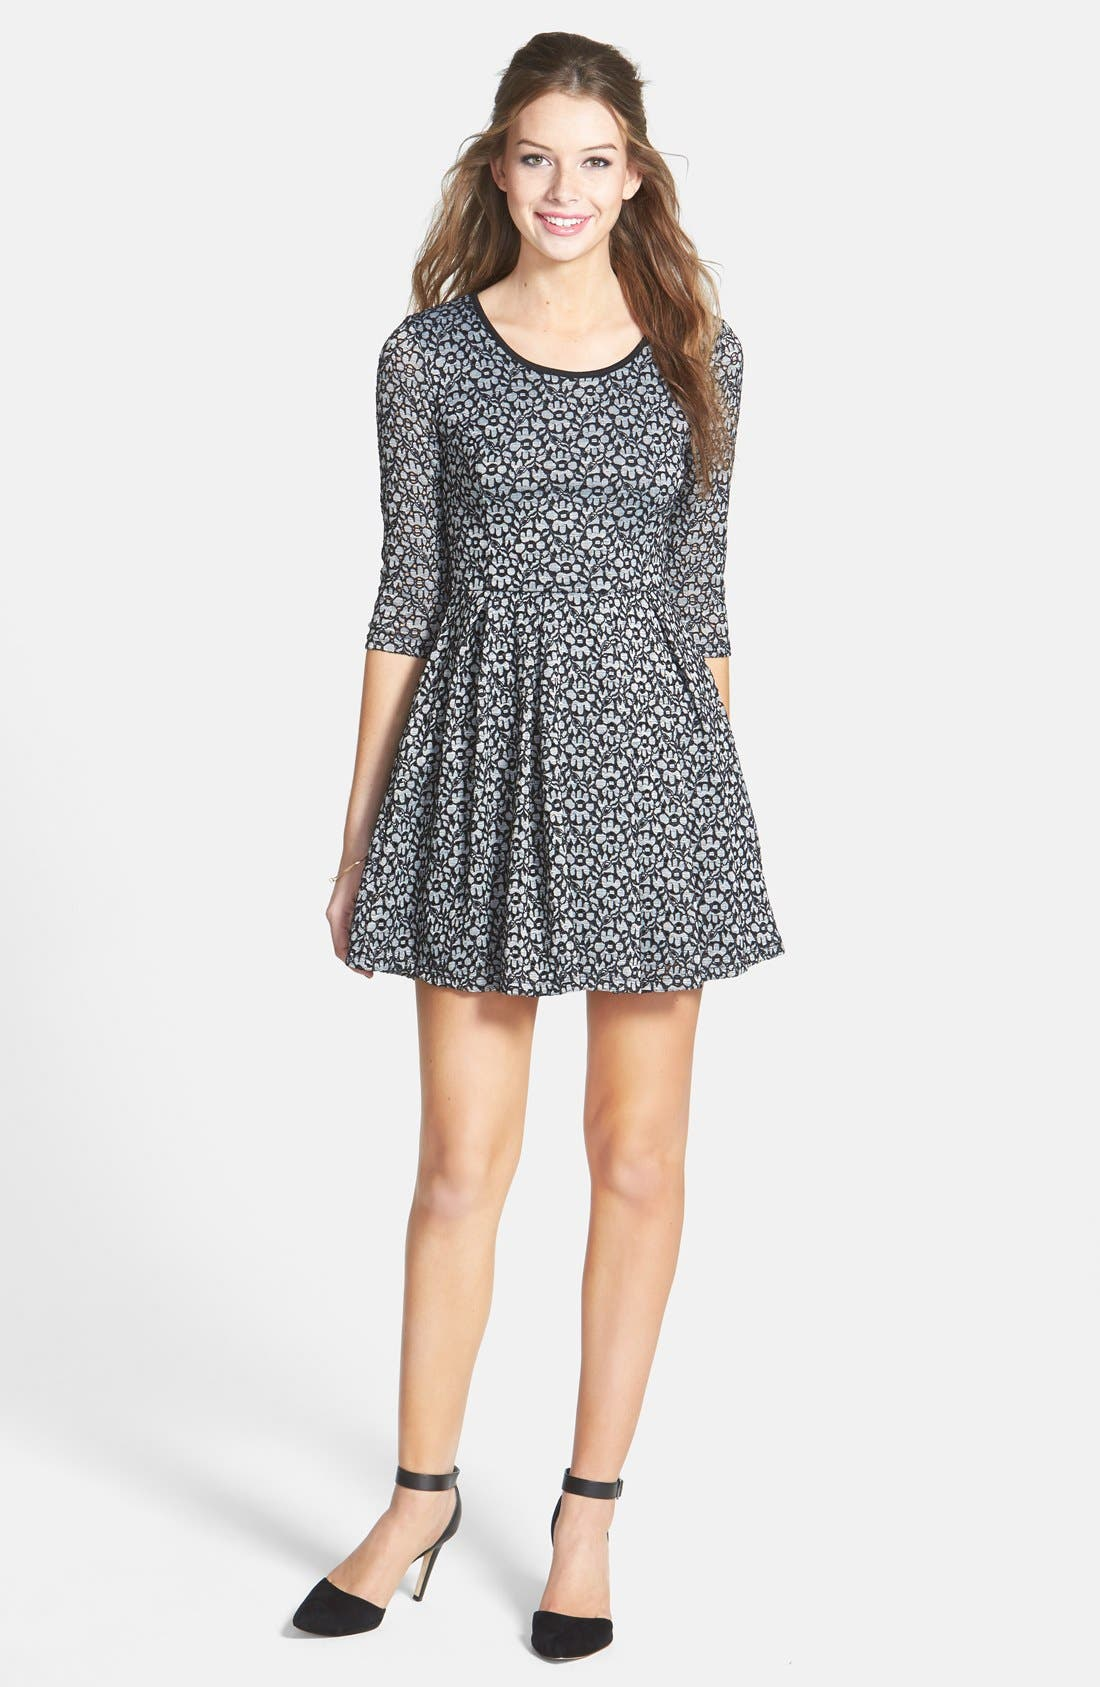 Main Image - Lush Textured Floral Lace Skater Dress